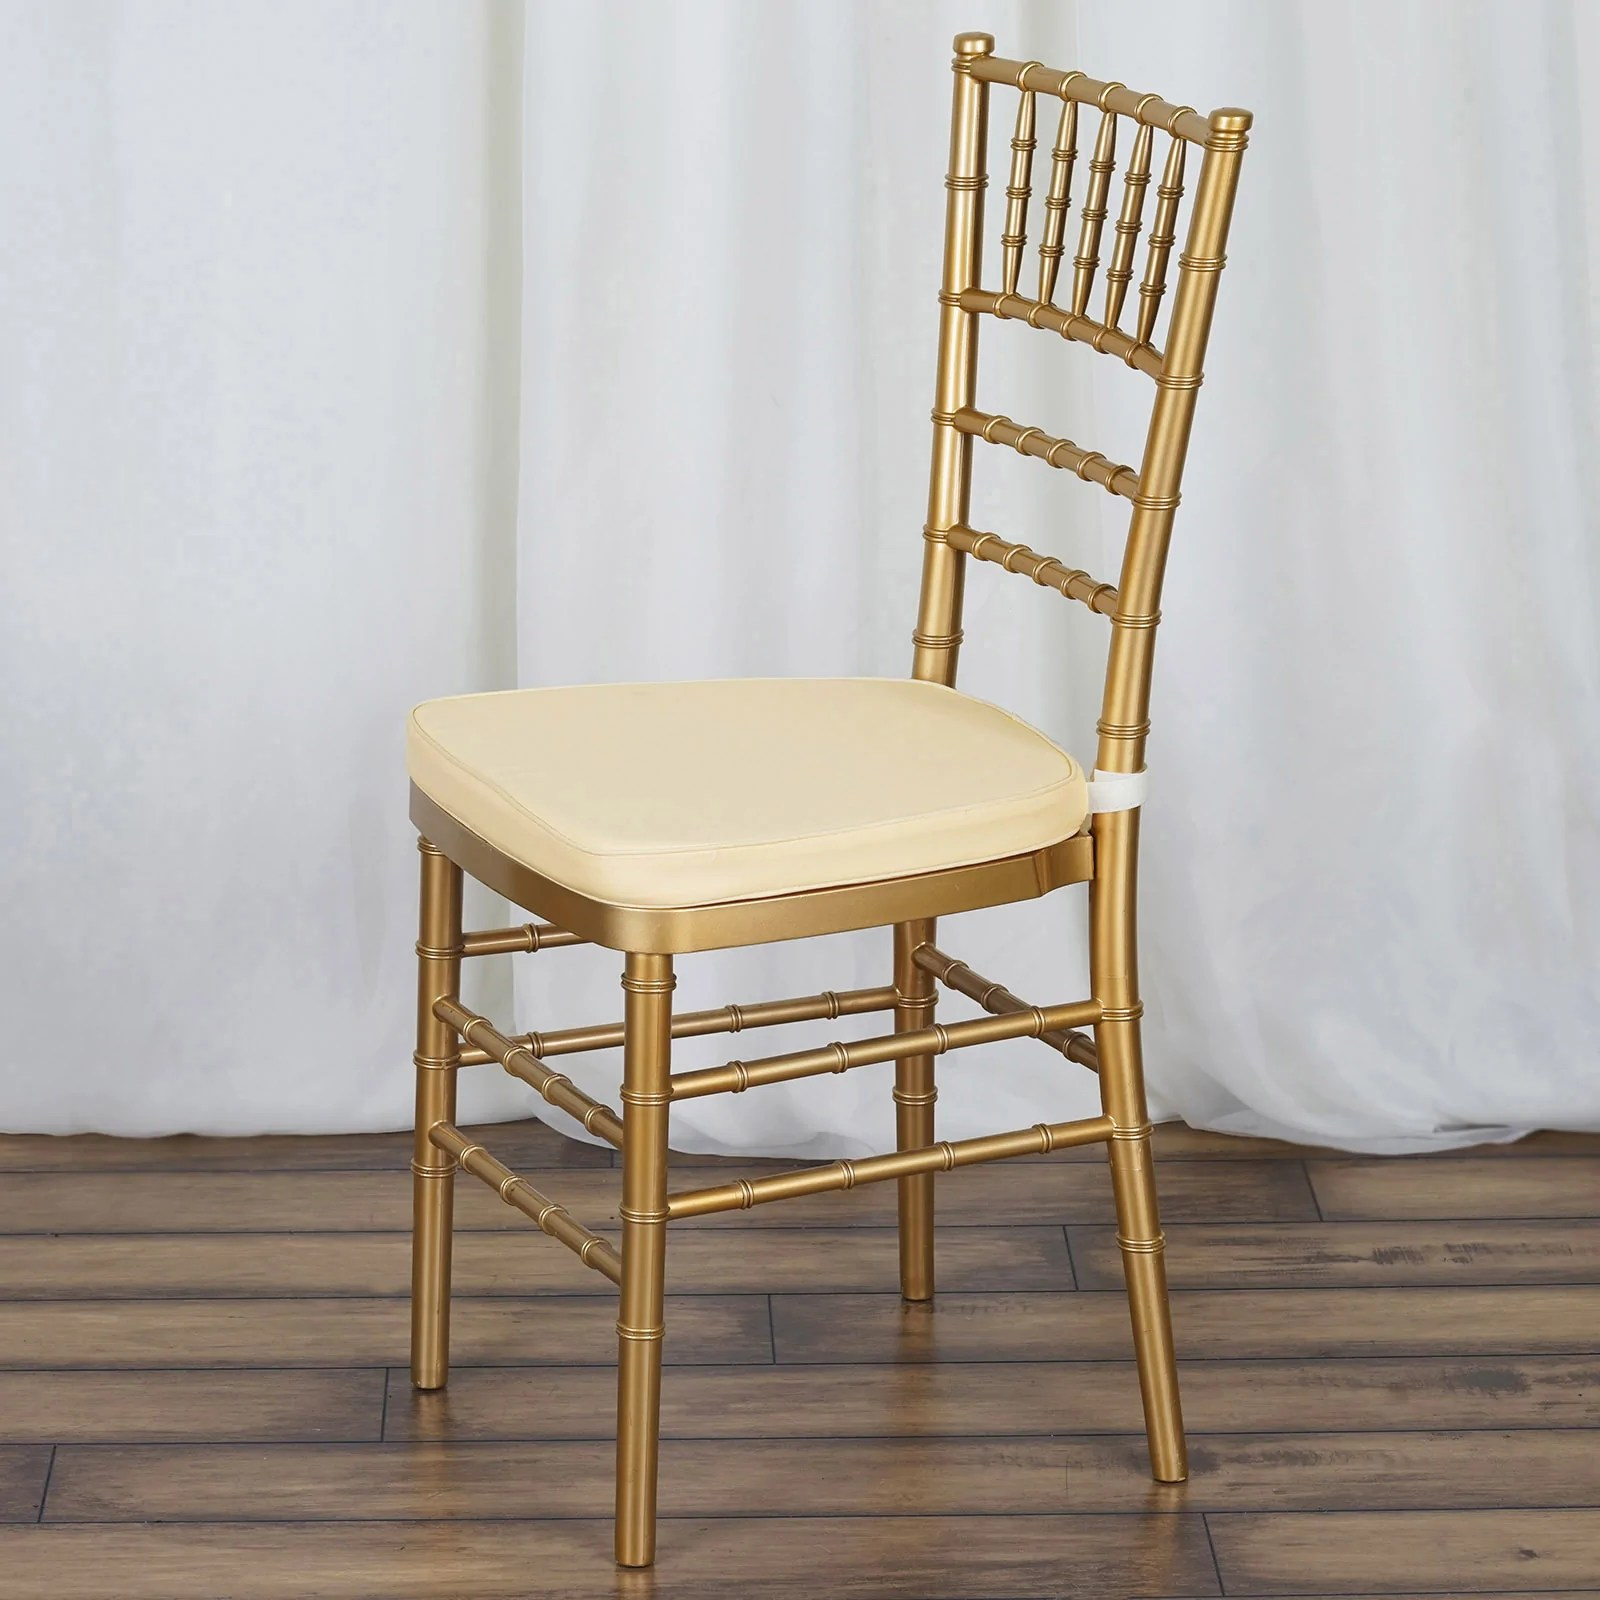 wholesale chiavari chairs for sale folding chair b&q 2 quot thick cushion beechwood ivory